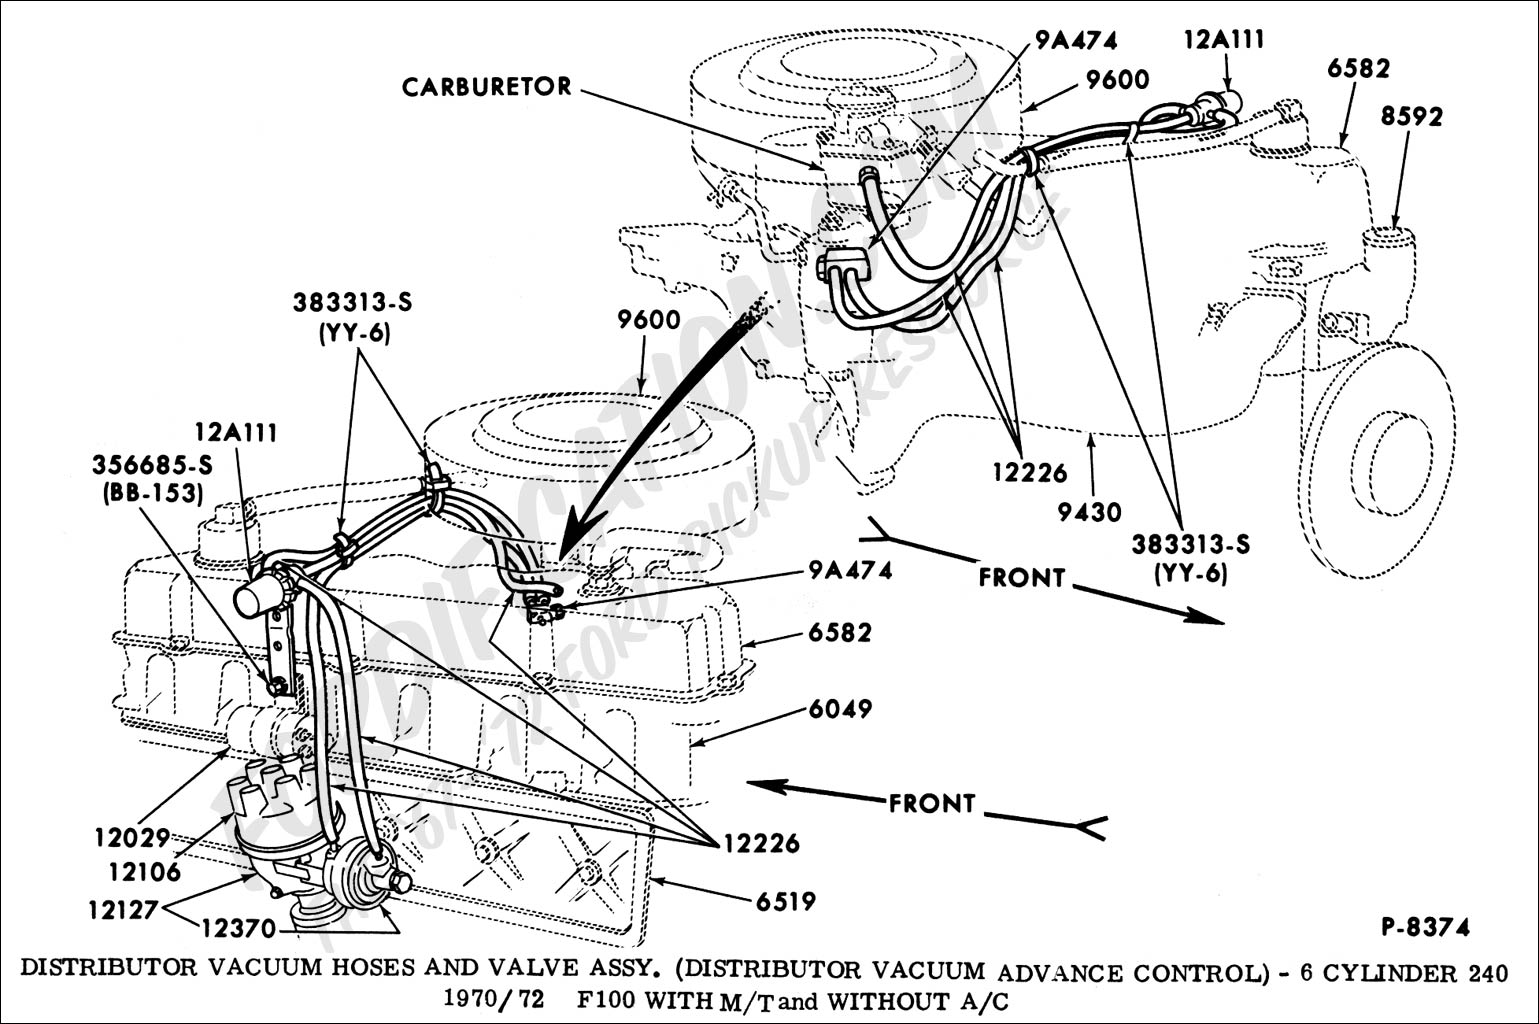 ford truck technical drawings and schematics section i 1986 Ford F 350 Wiring Diagram ford truck technical drawings and schematics section i electrical and wiring 1986 ford f350 wiring diagram